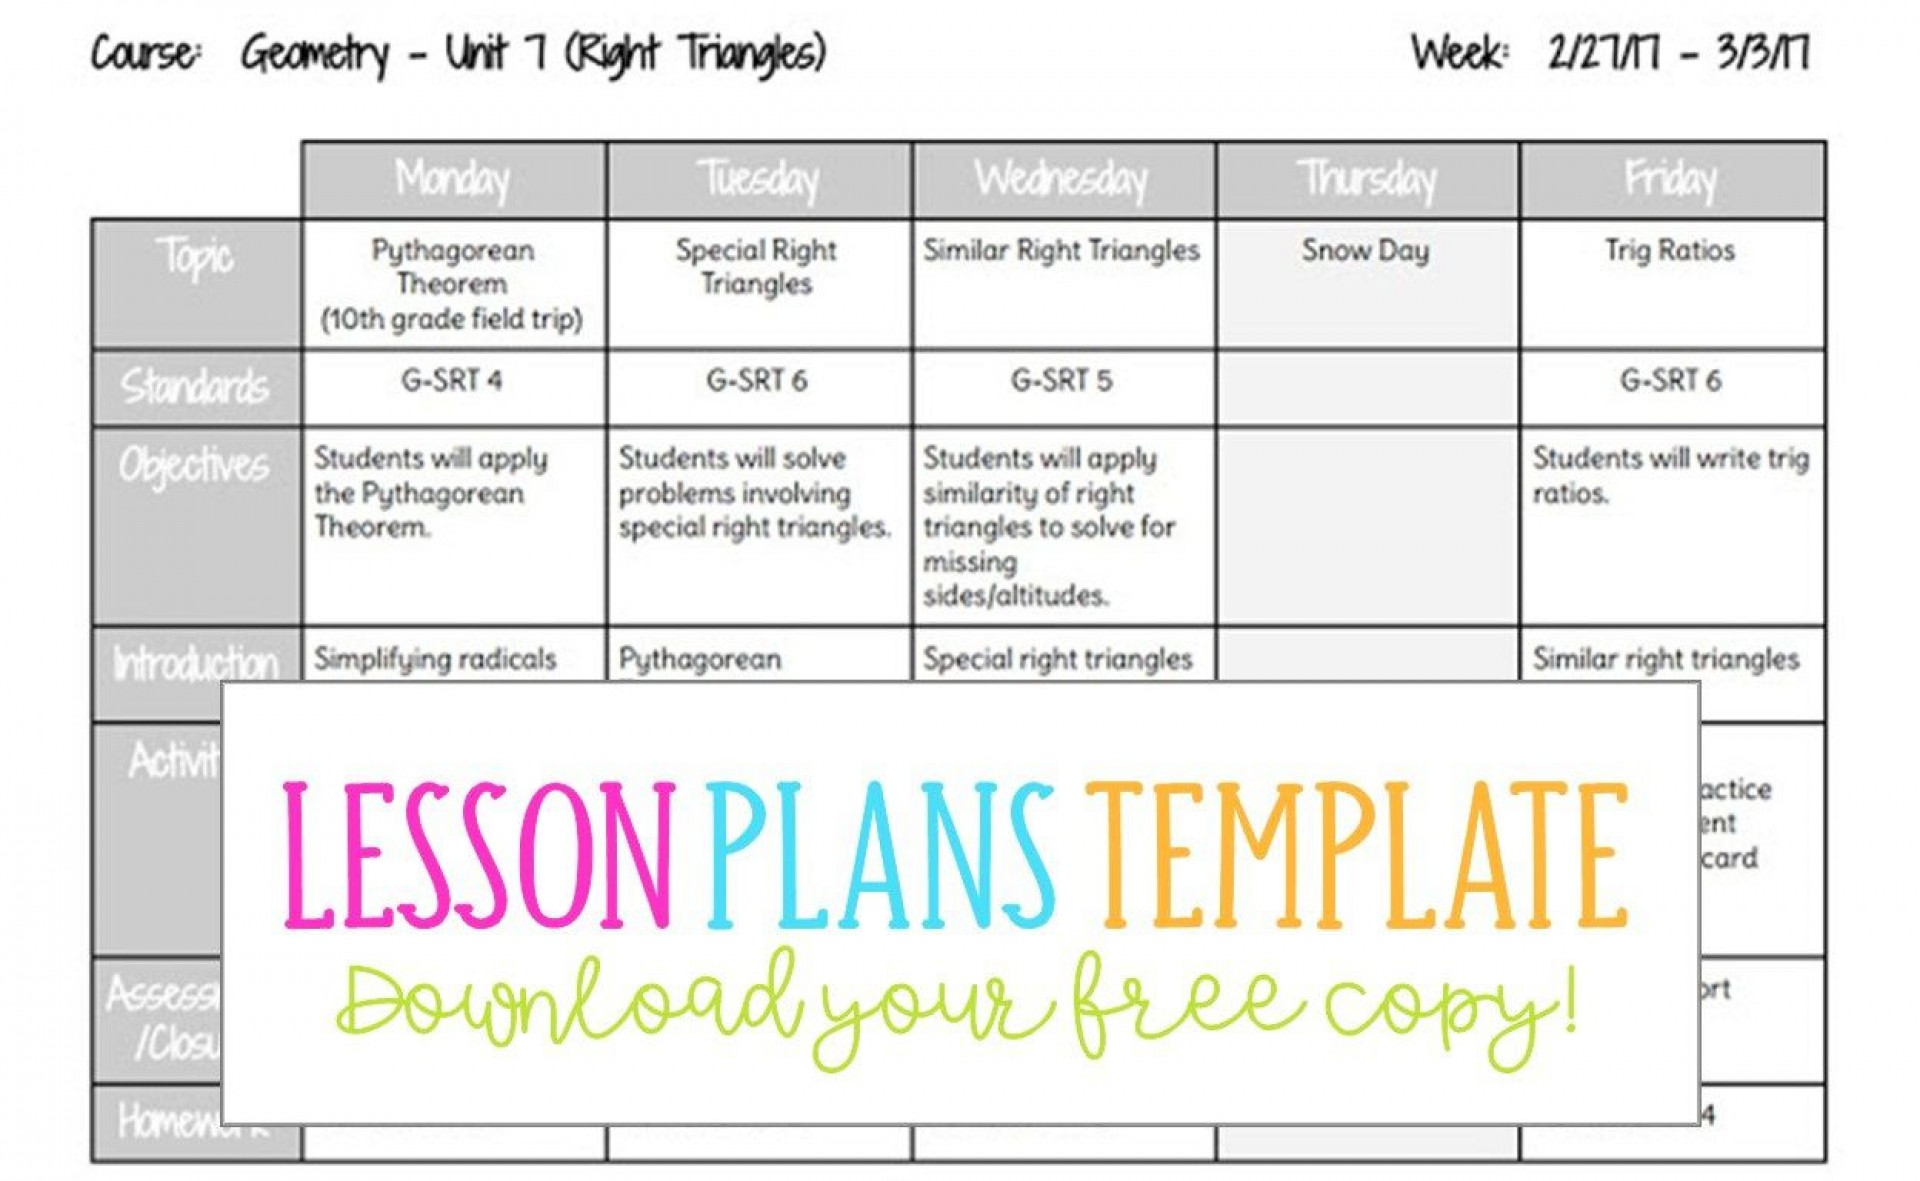 005 Marvelou Weekly Lesson Plan Template Pdf High Def  Blank1920